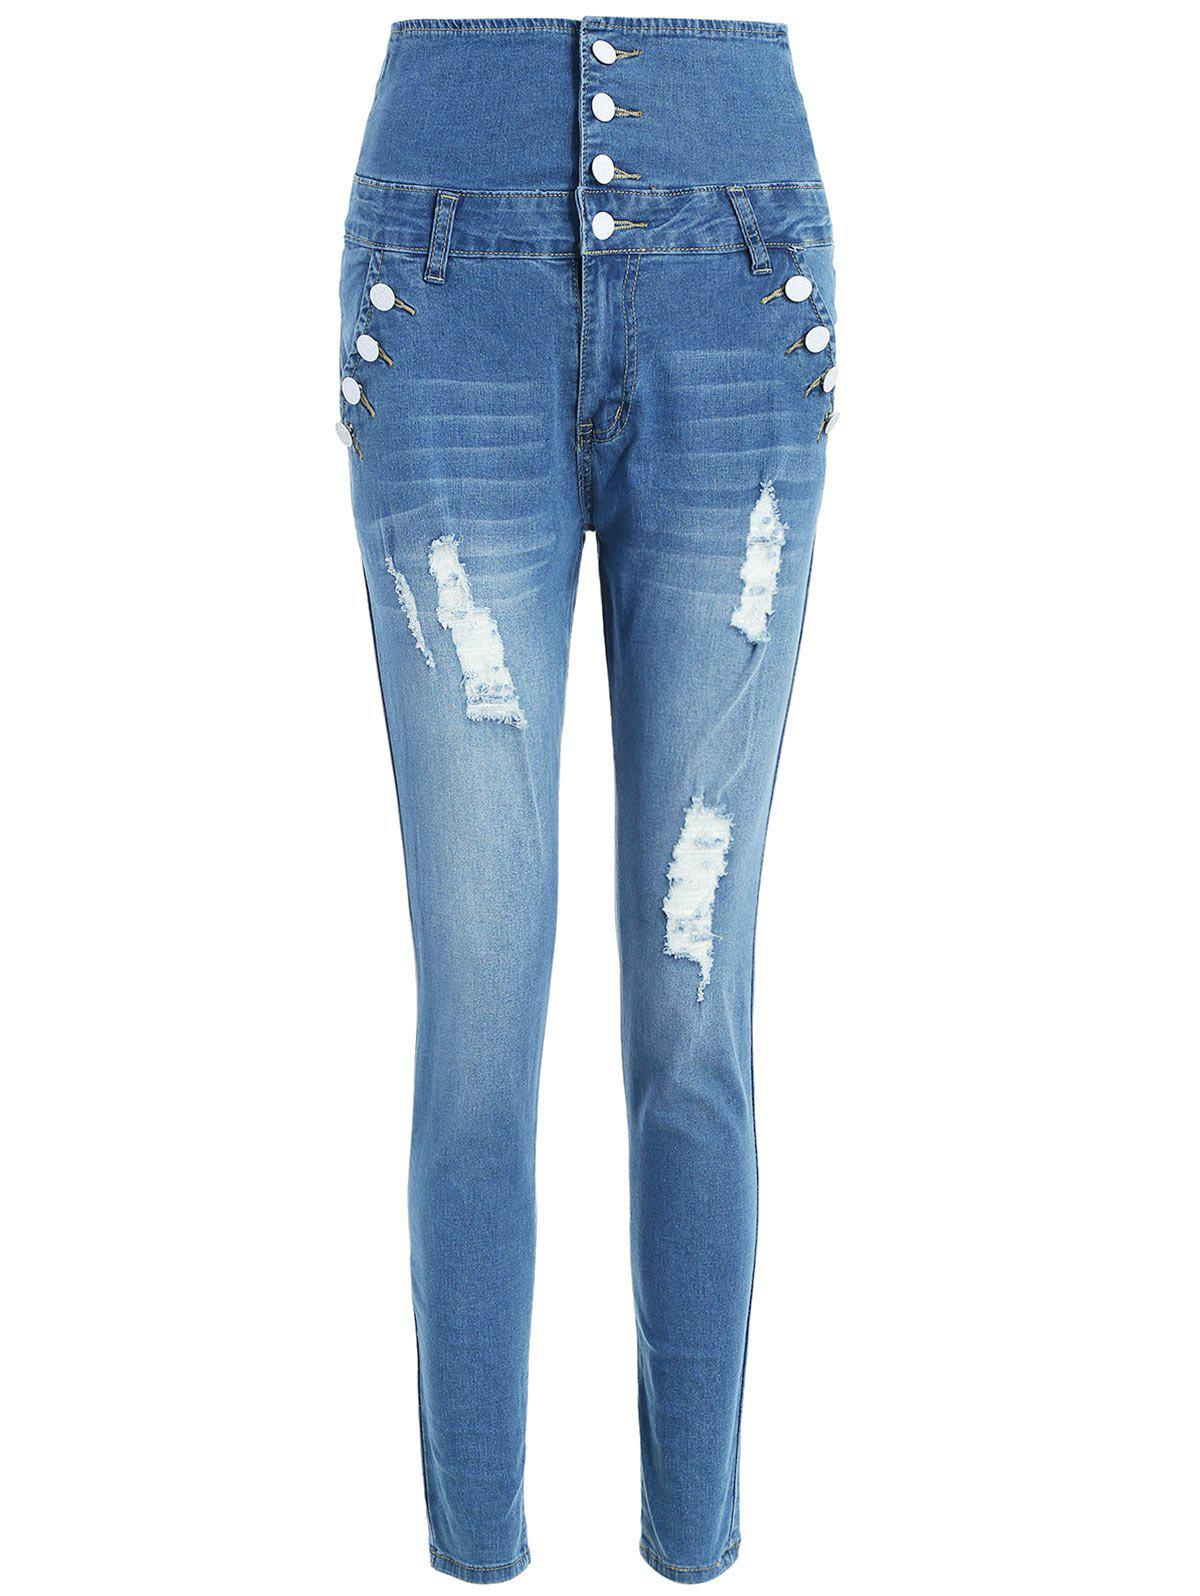 High Waist Slim Fit Distressed Jeans - JEANS BLUE M